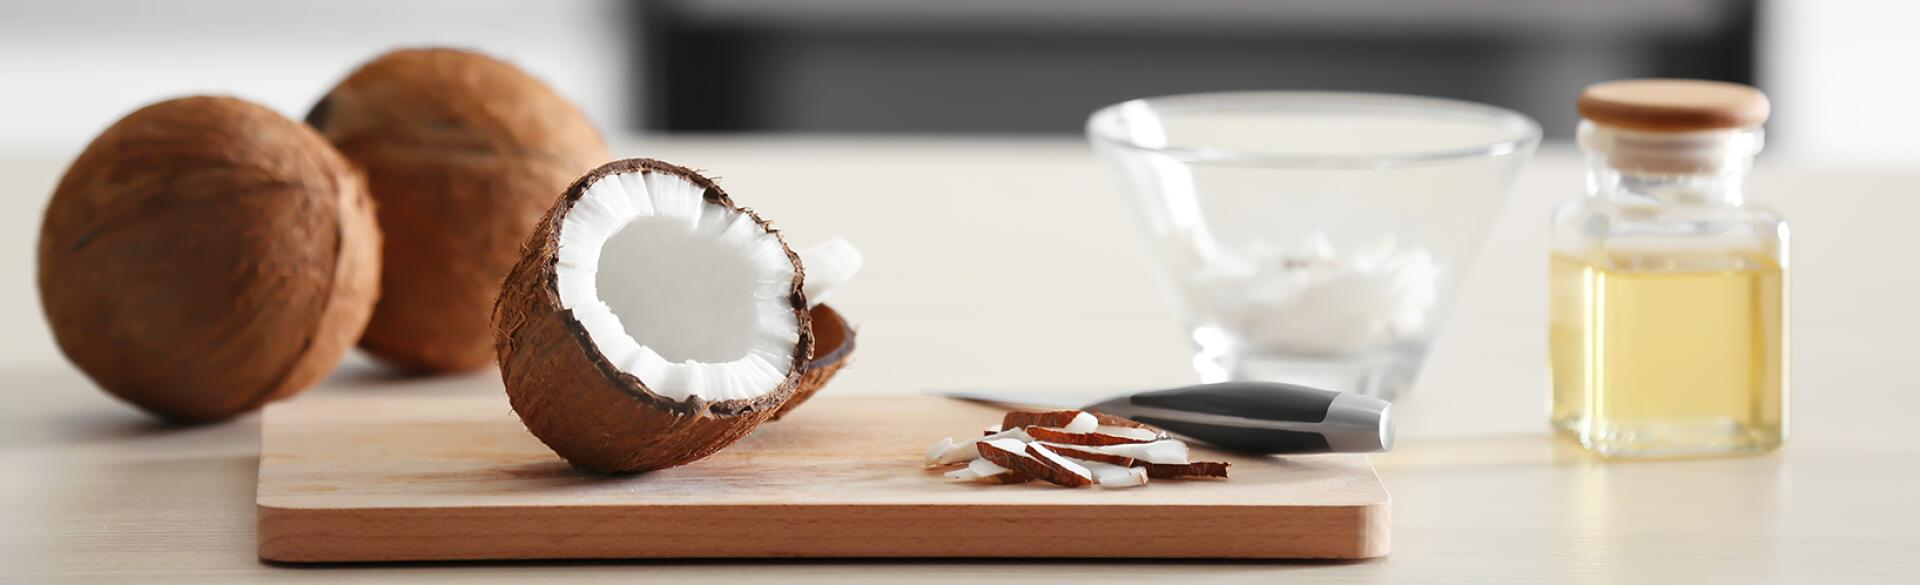 image_of_coconut_and_coconut_oil_on_counter_GettyImages-1074292124_1800